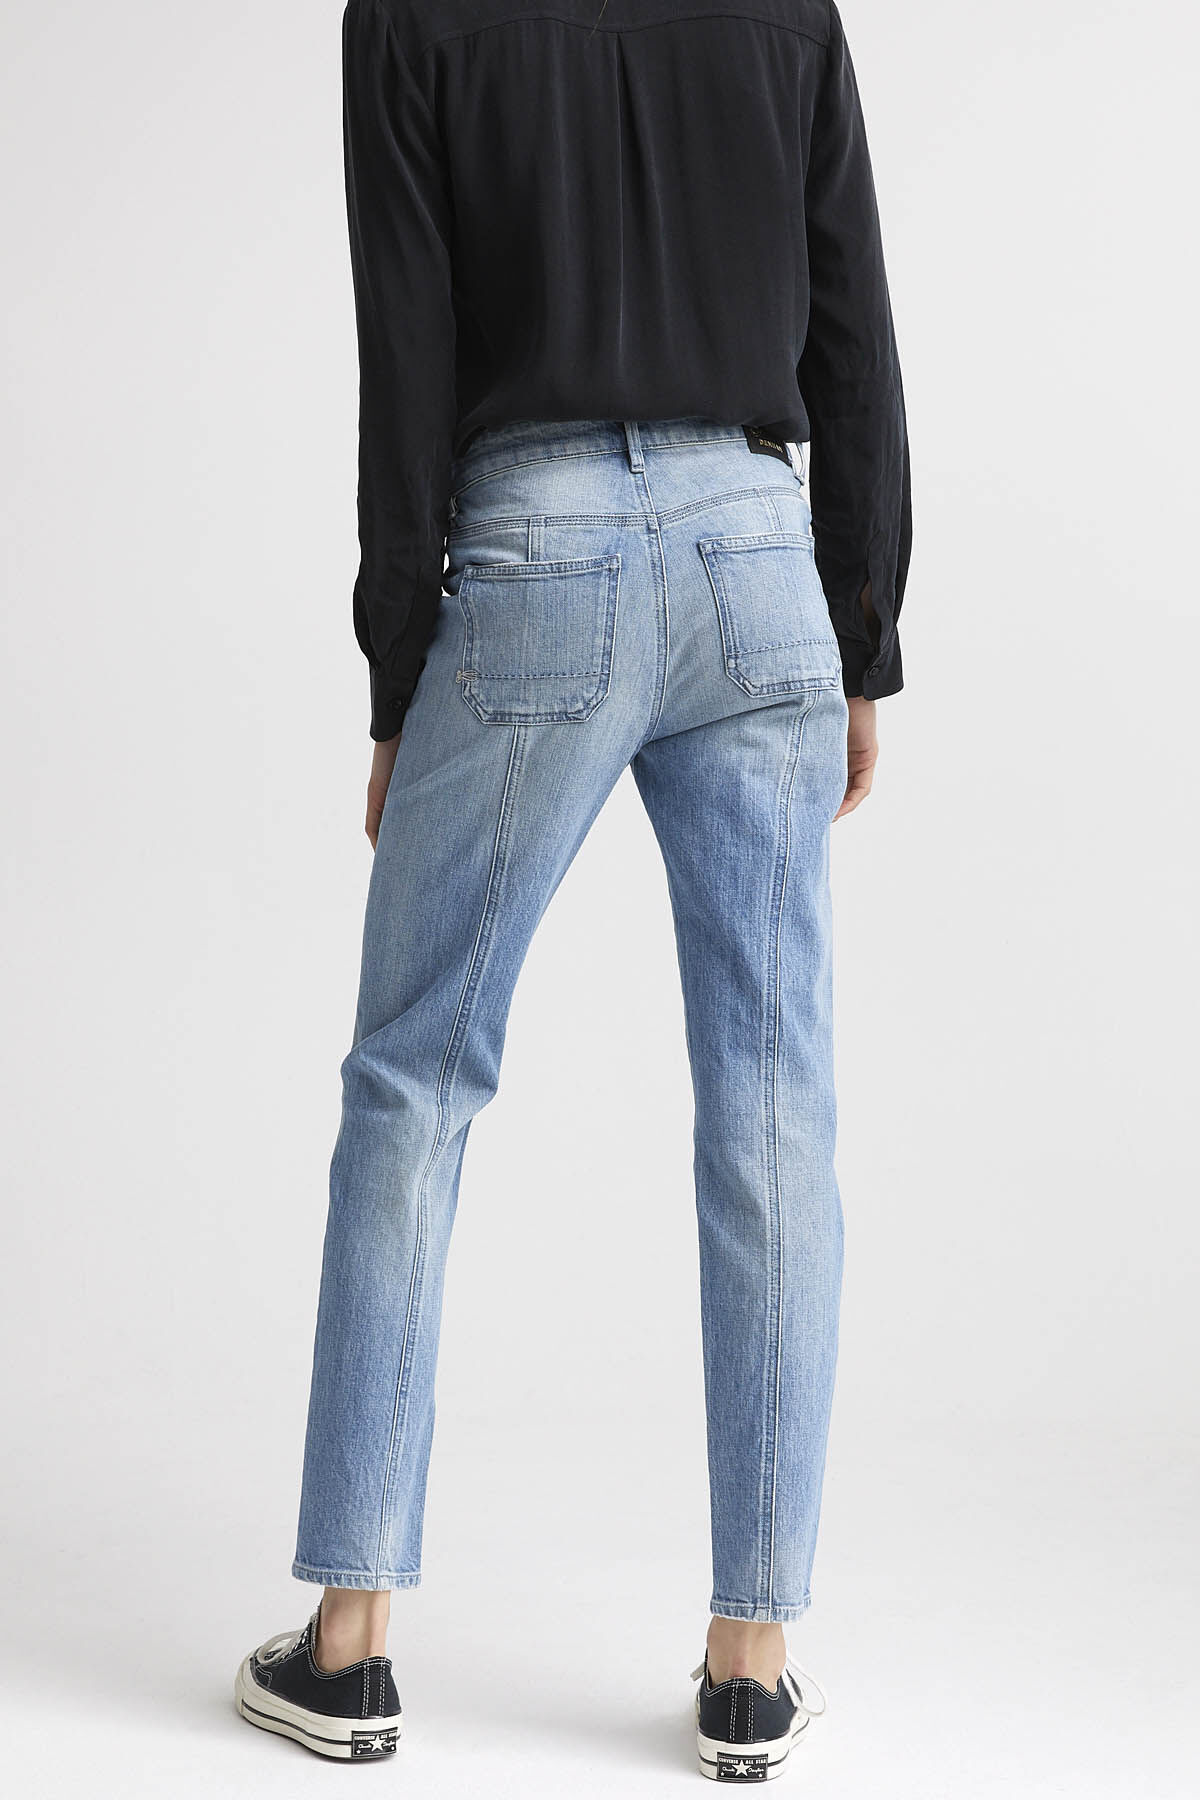 WHISPER JEANS Organic Cotton Denim - High-rise Straight Fit